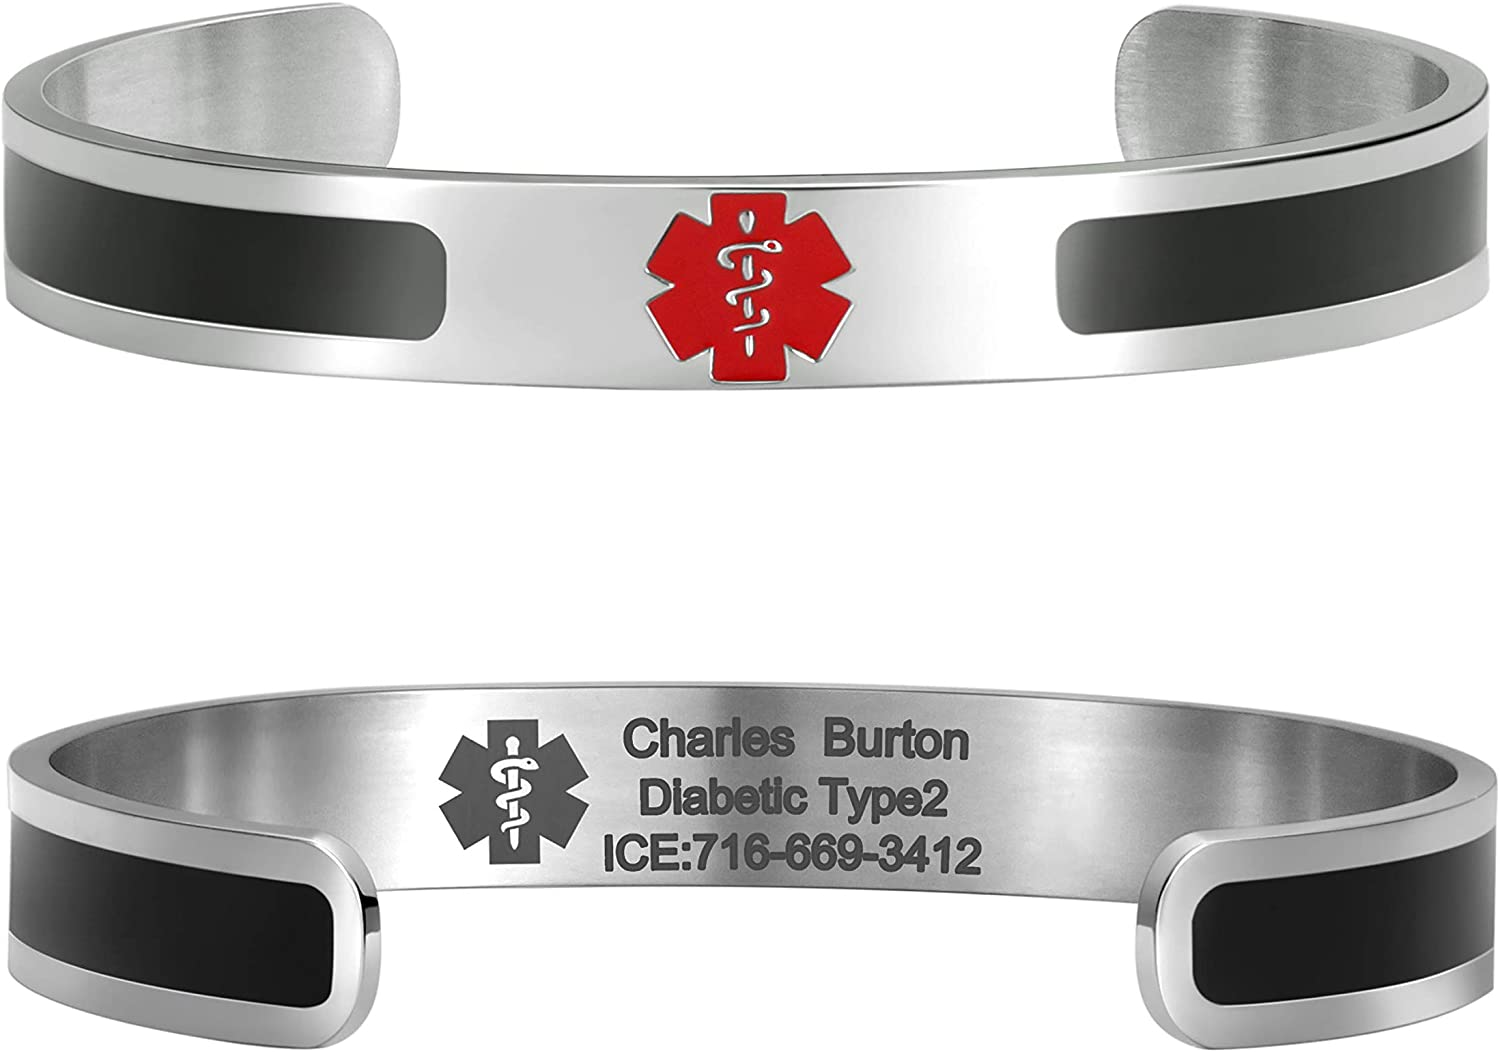 MunsteryAid Classic Custom Medical Alert ID Bracelet for Men or Women Stainless Steel Personalized Emergency Identification Cuff Bangle,6.5 to 8 Inches